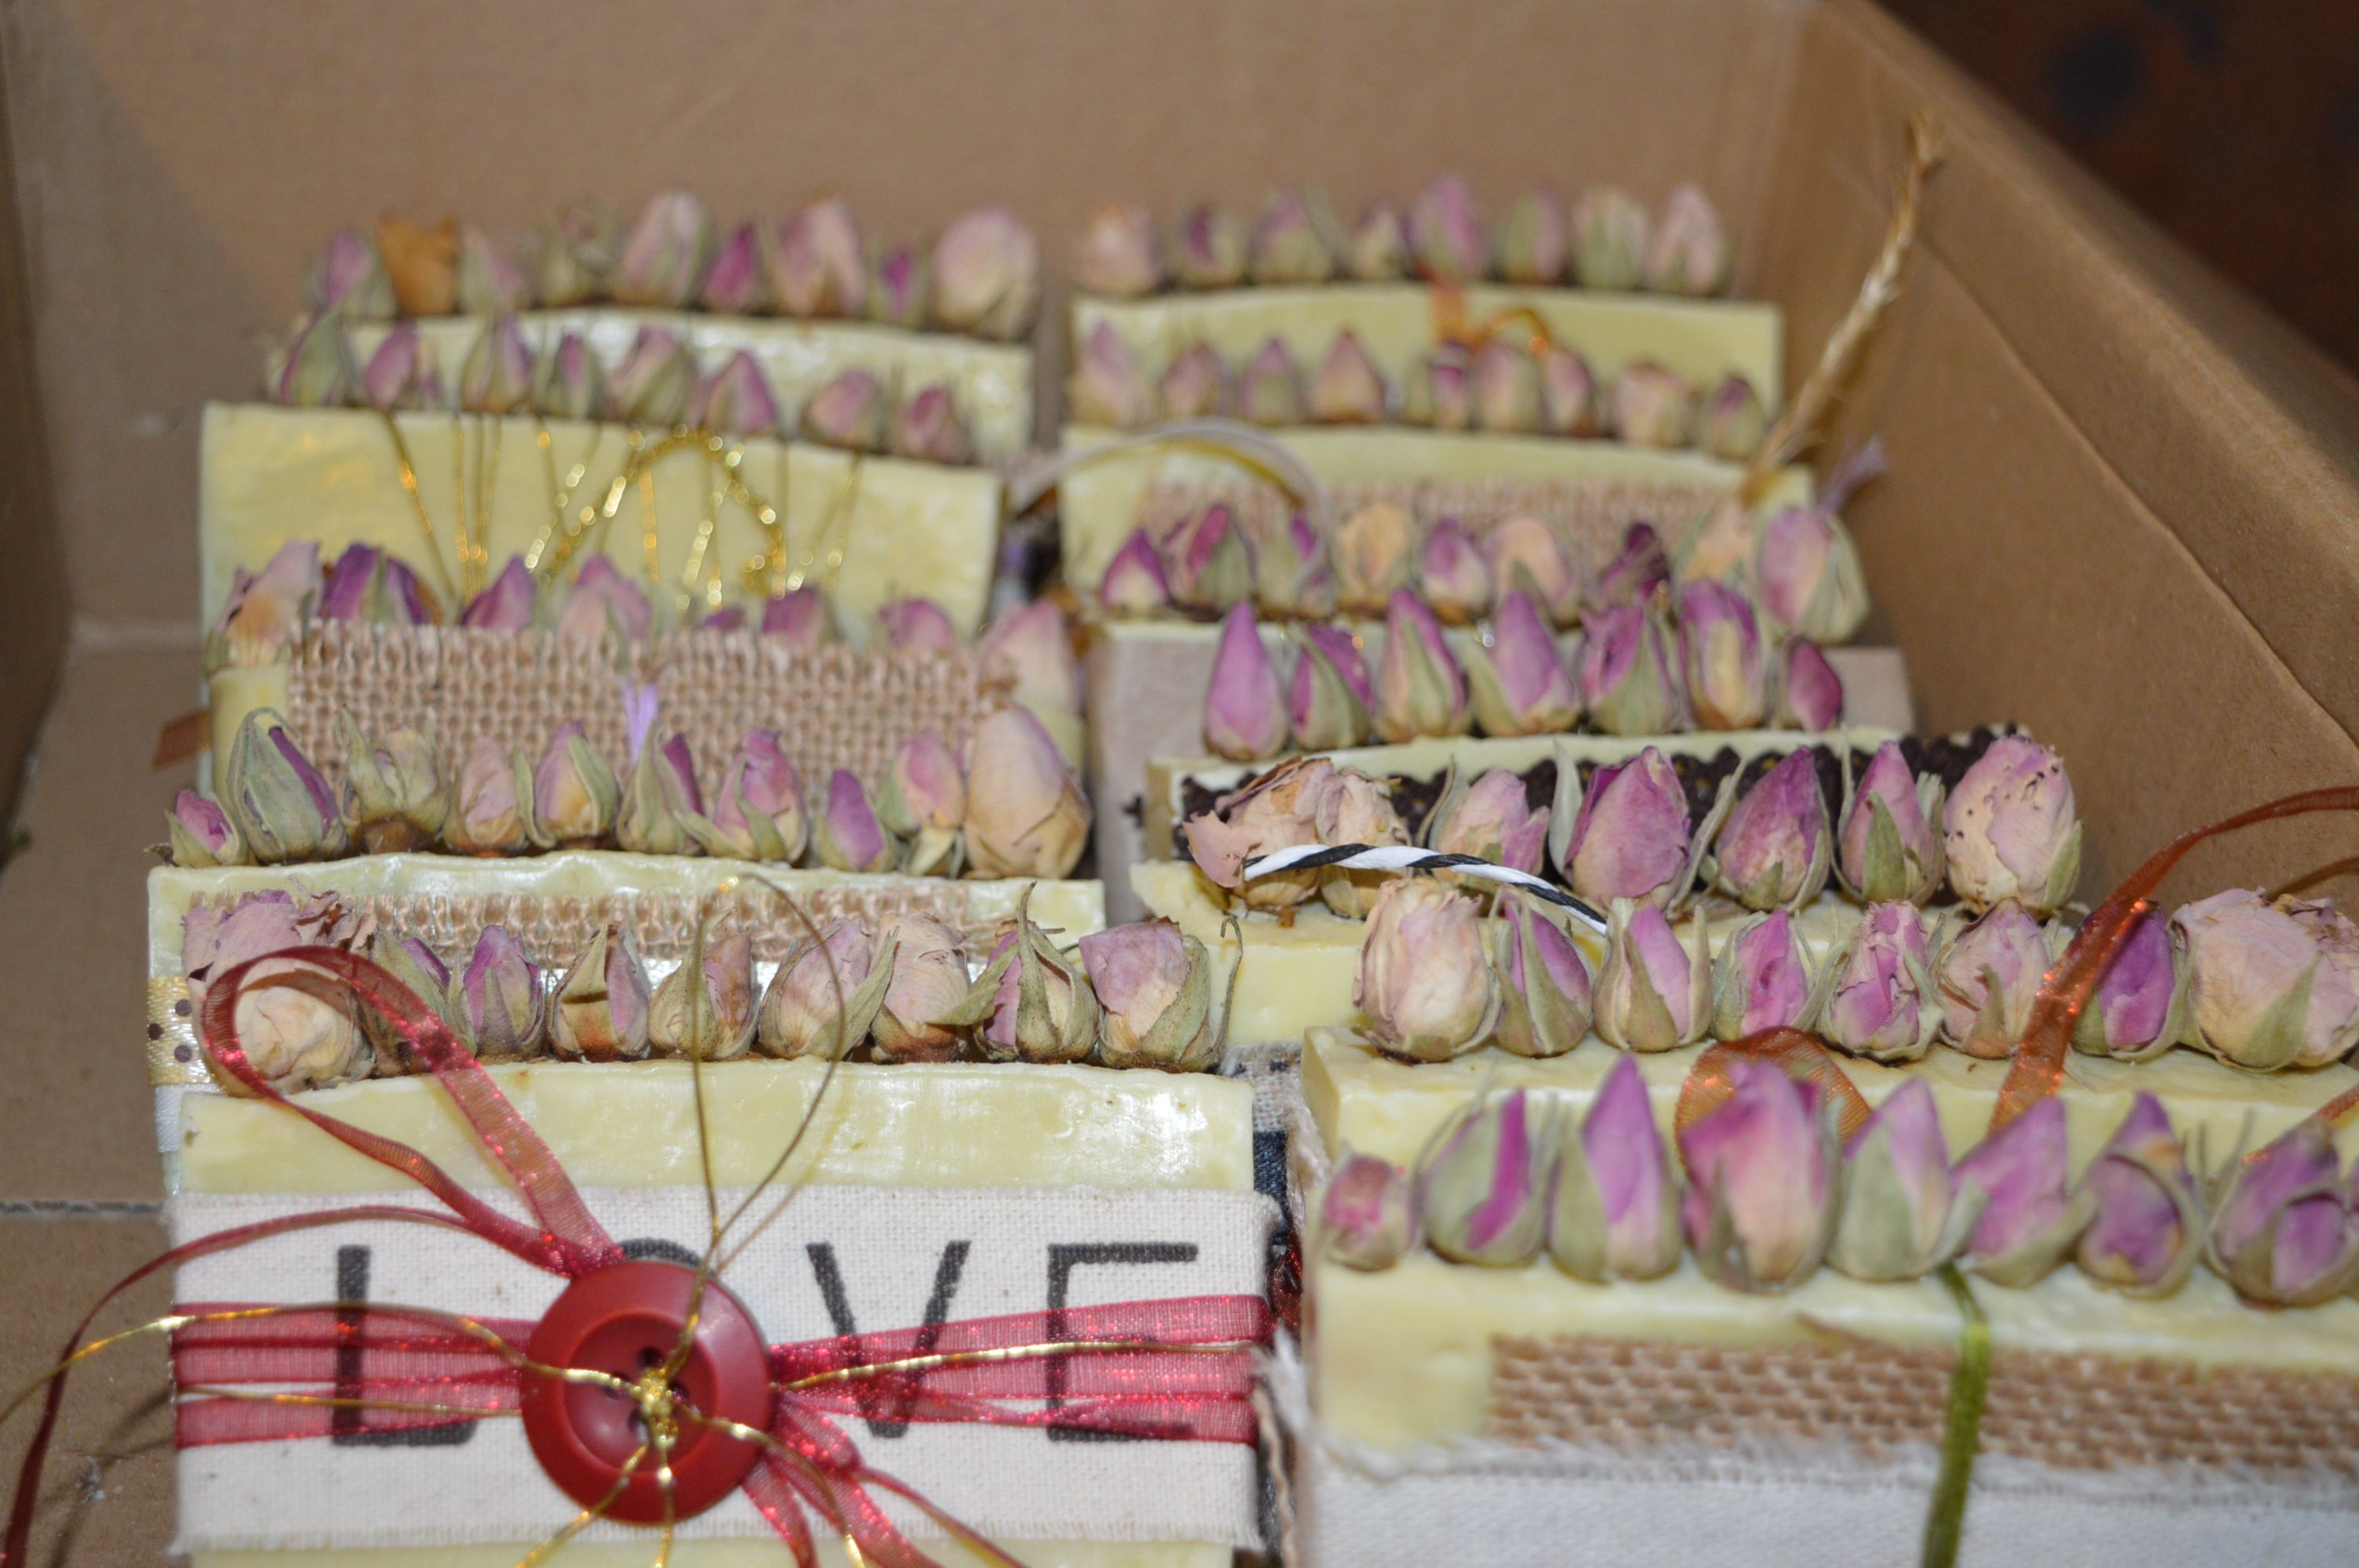 #Handmade #Soap <3 Base : #Olive Oil <3 with  #Rose Oil and Roses <3 #handcrafted